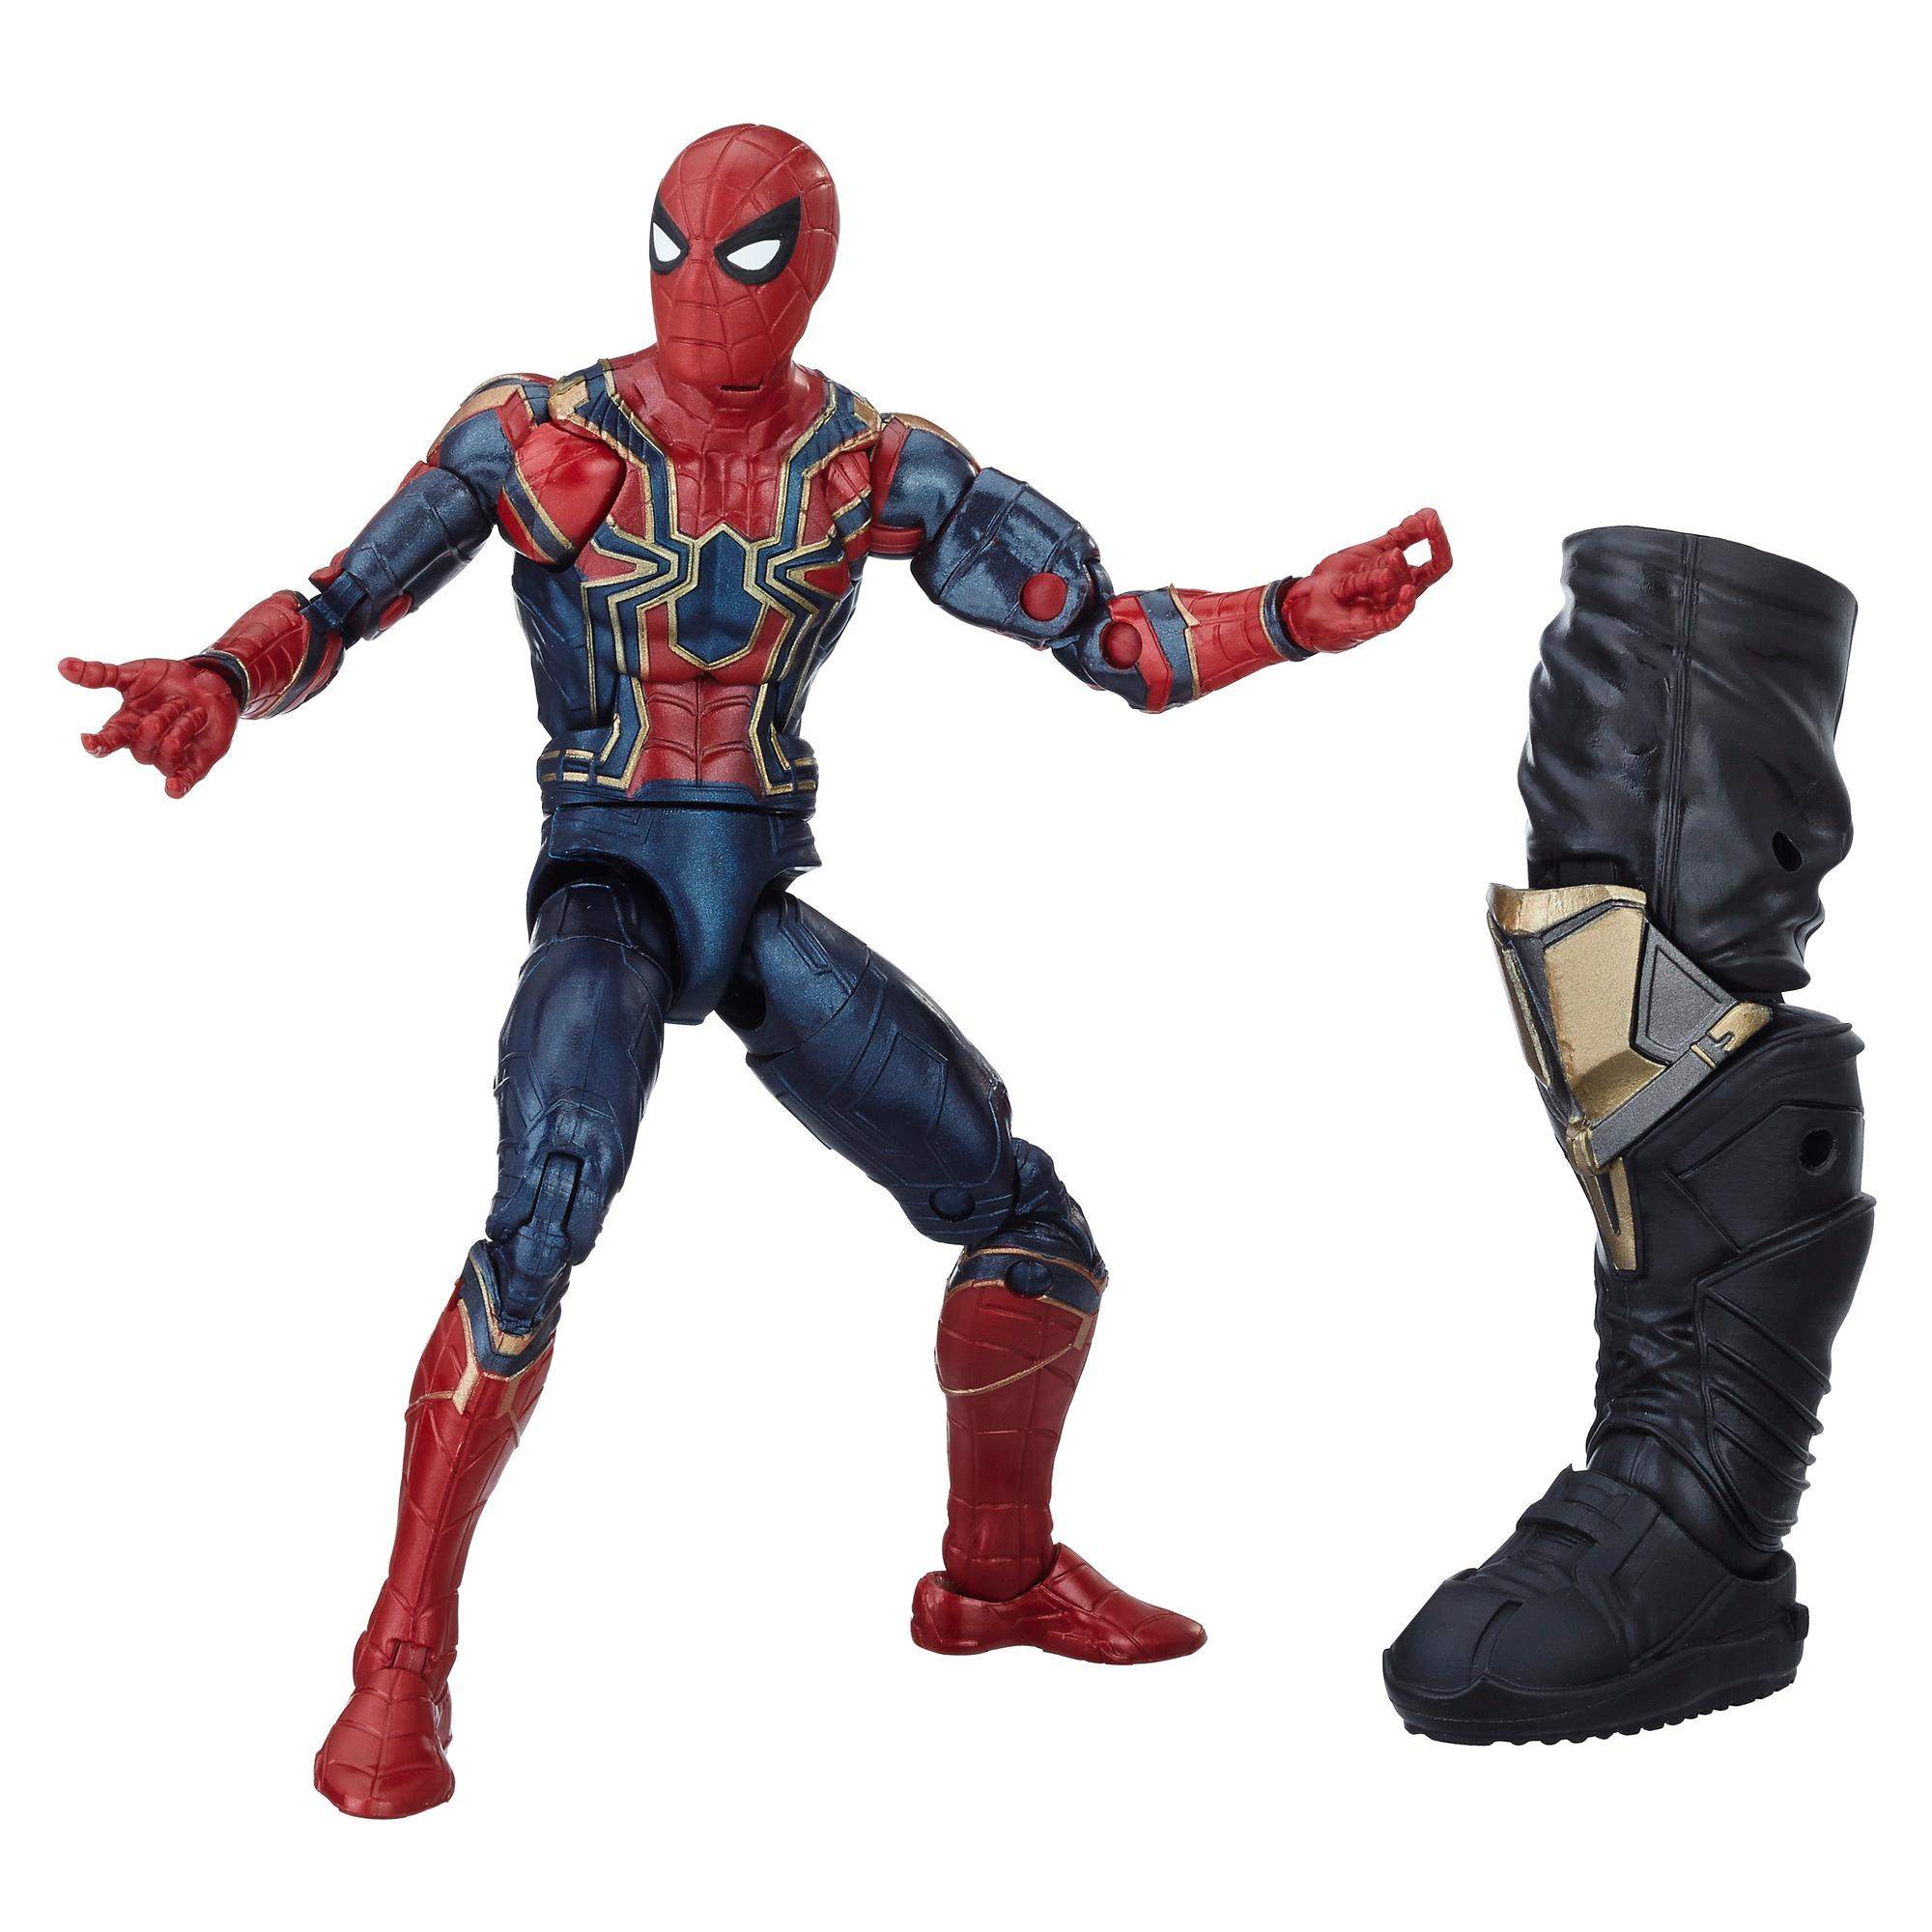 Avengers série Marvel Legends - Figurine Spider-Man de 15 cm